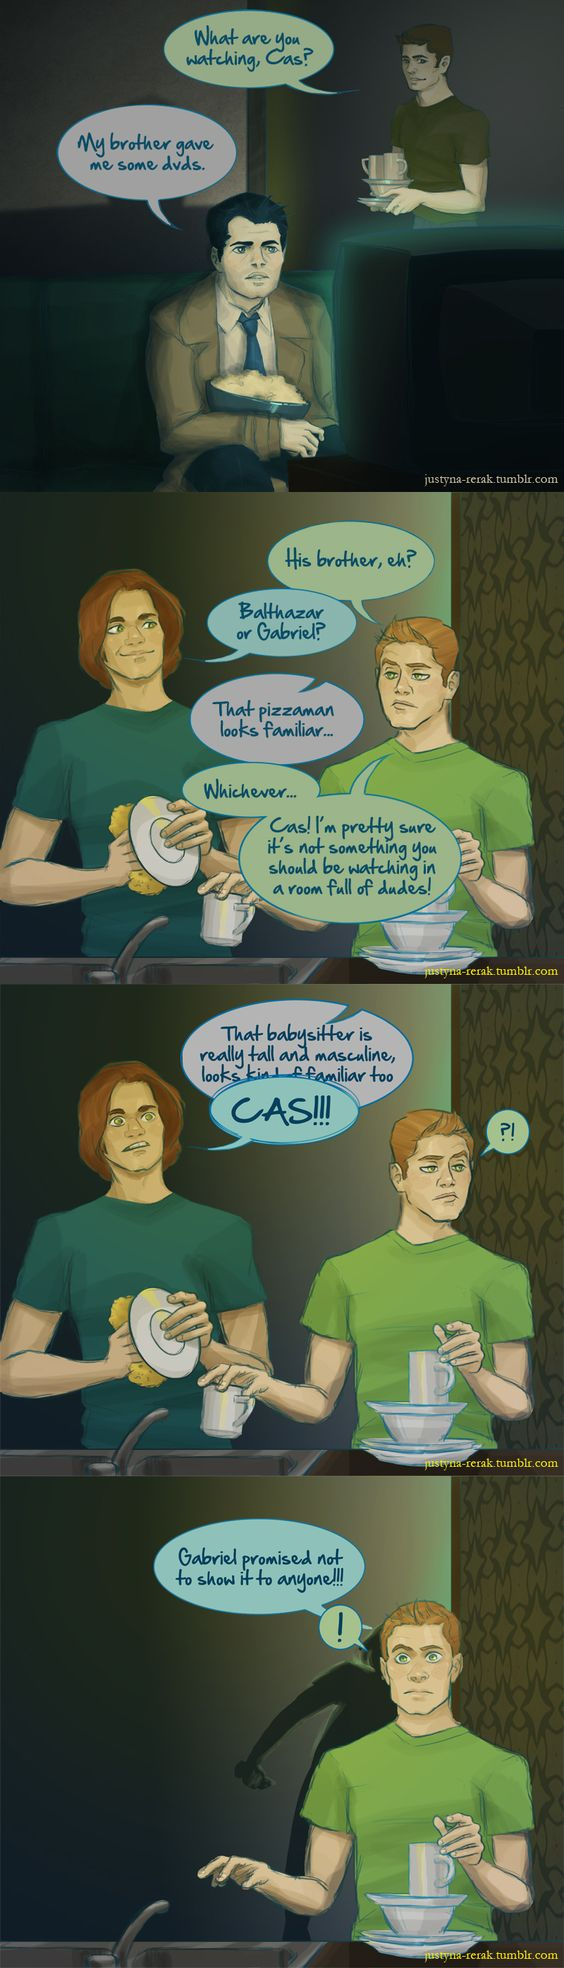 Borrowing dvds from Gabriel by ~Wind-up-Owl on deviantART <-- If the short pizza man loves the tall muscular babysitter, why is he spanking him? Has he been bad?